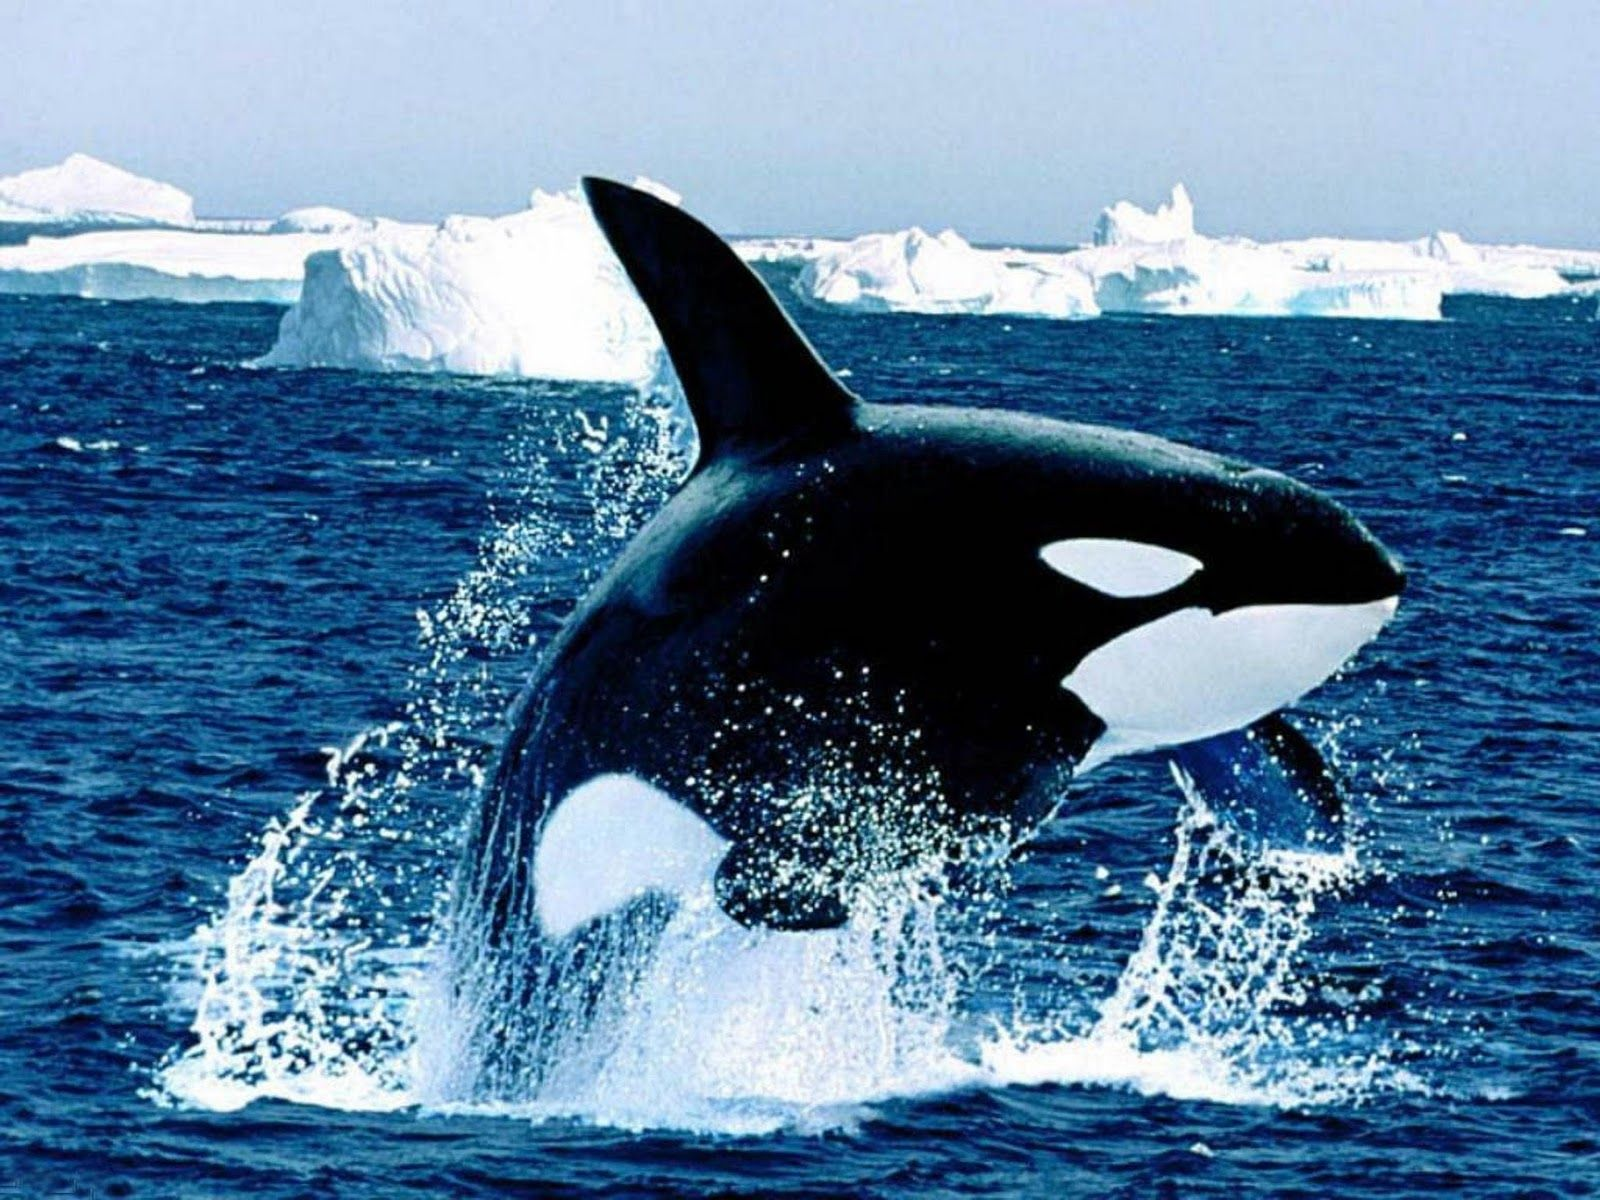 Killer whales pictures orca wallpapers hd photos killer pictures orca wallpapers hd photos killer whales wallpaper 13g altavistaventures Gallery